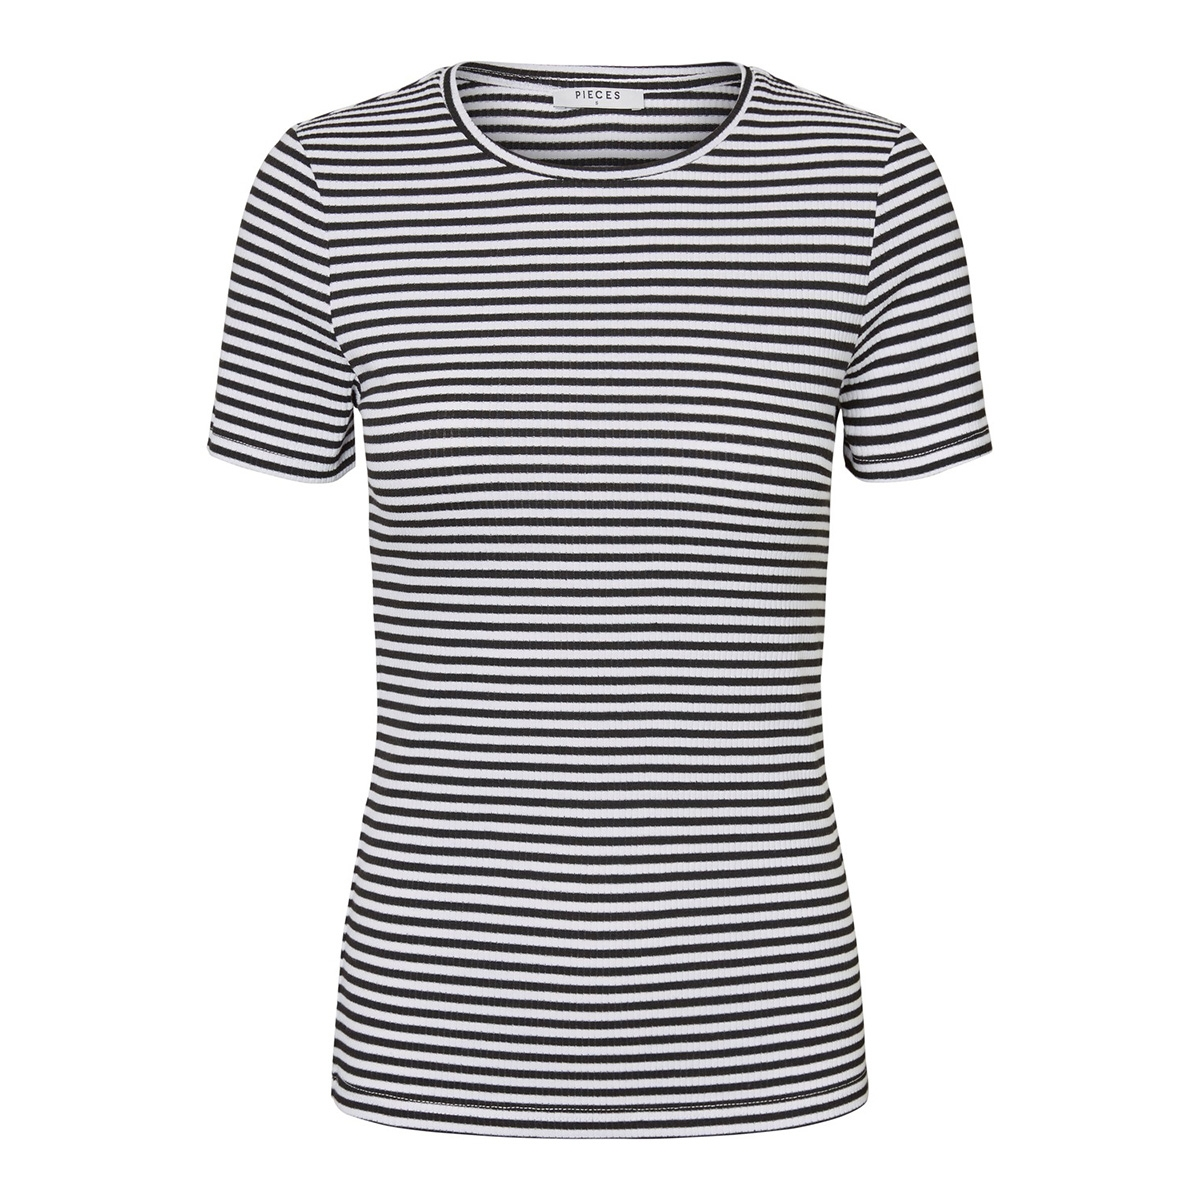 pclana ss top 17092310 pieces t-shirt bright white/black